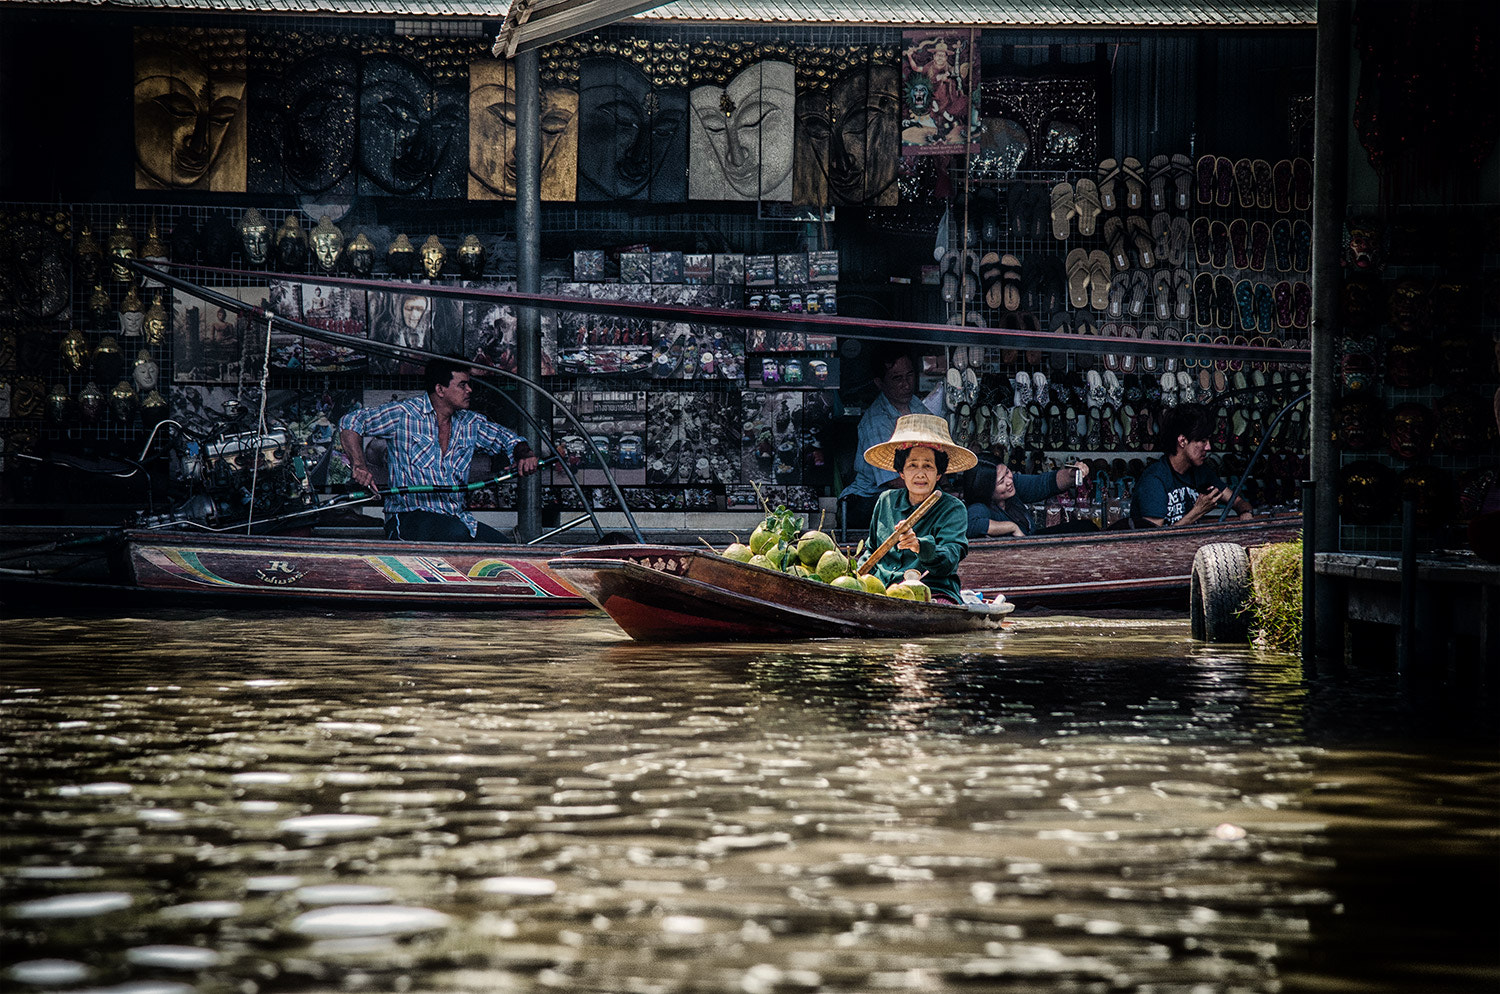 Photograph The Canal life by Chatchai Thalerngsuk on 500px